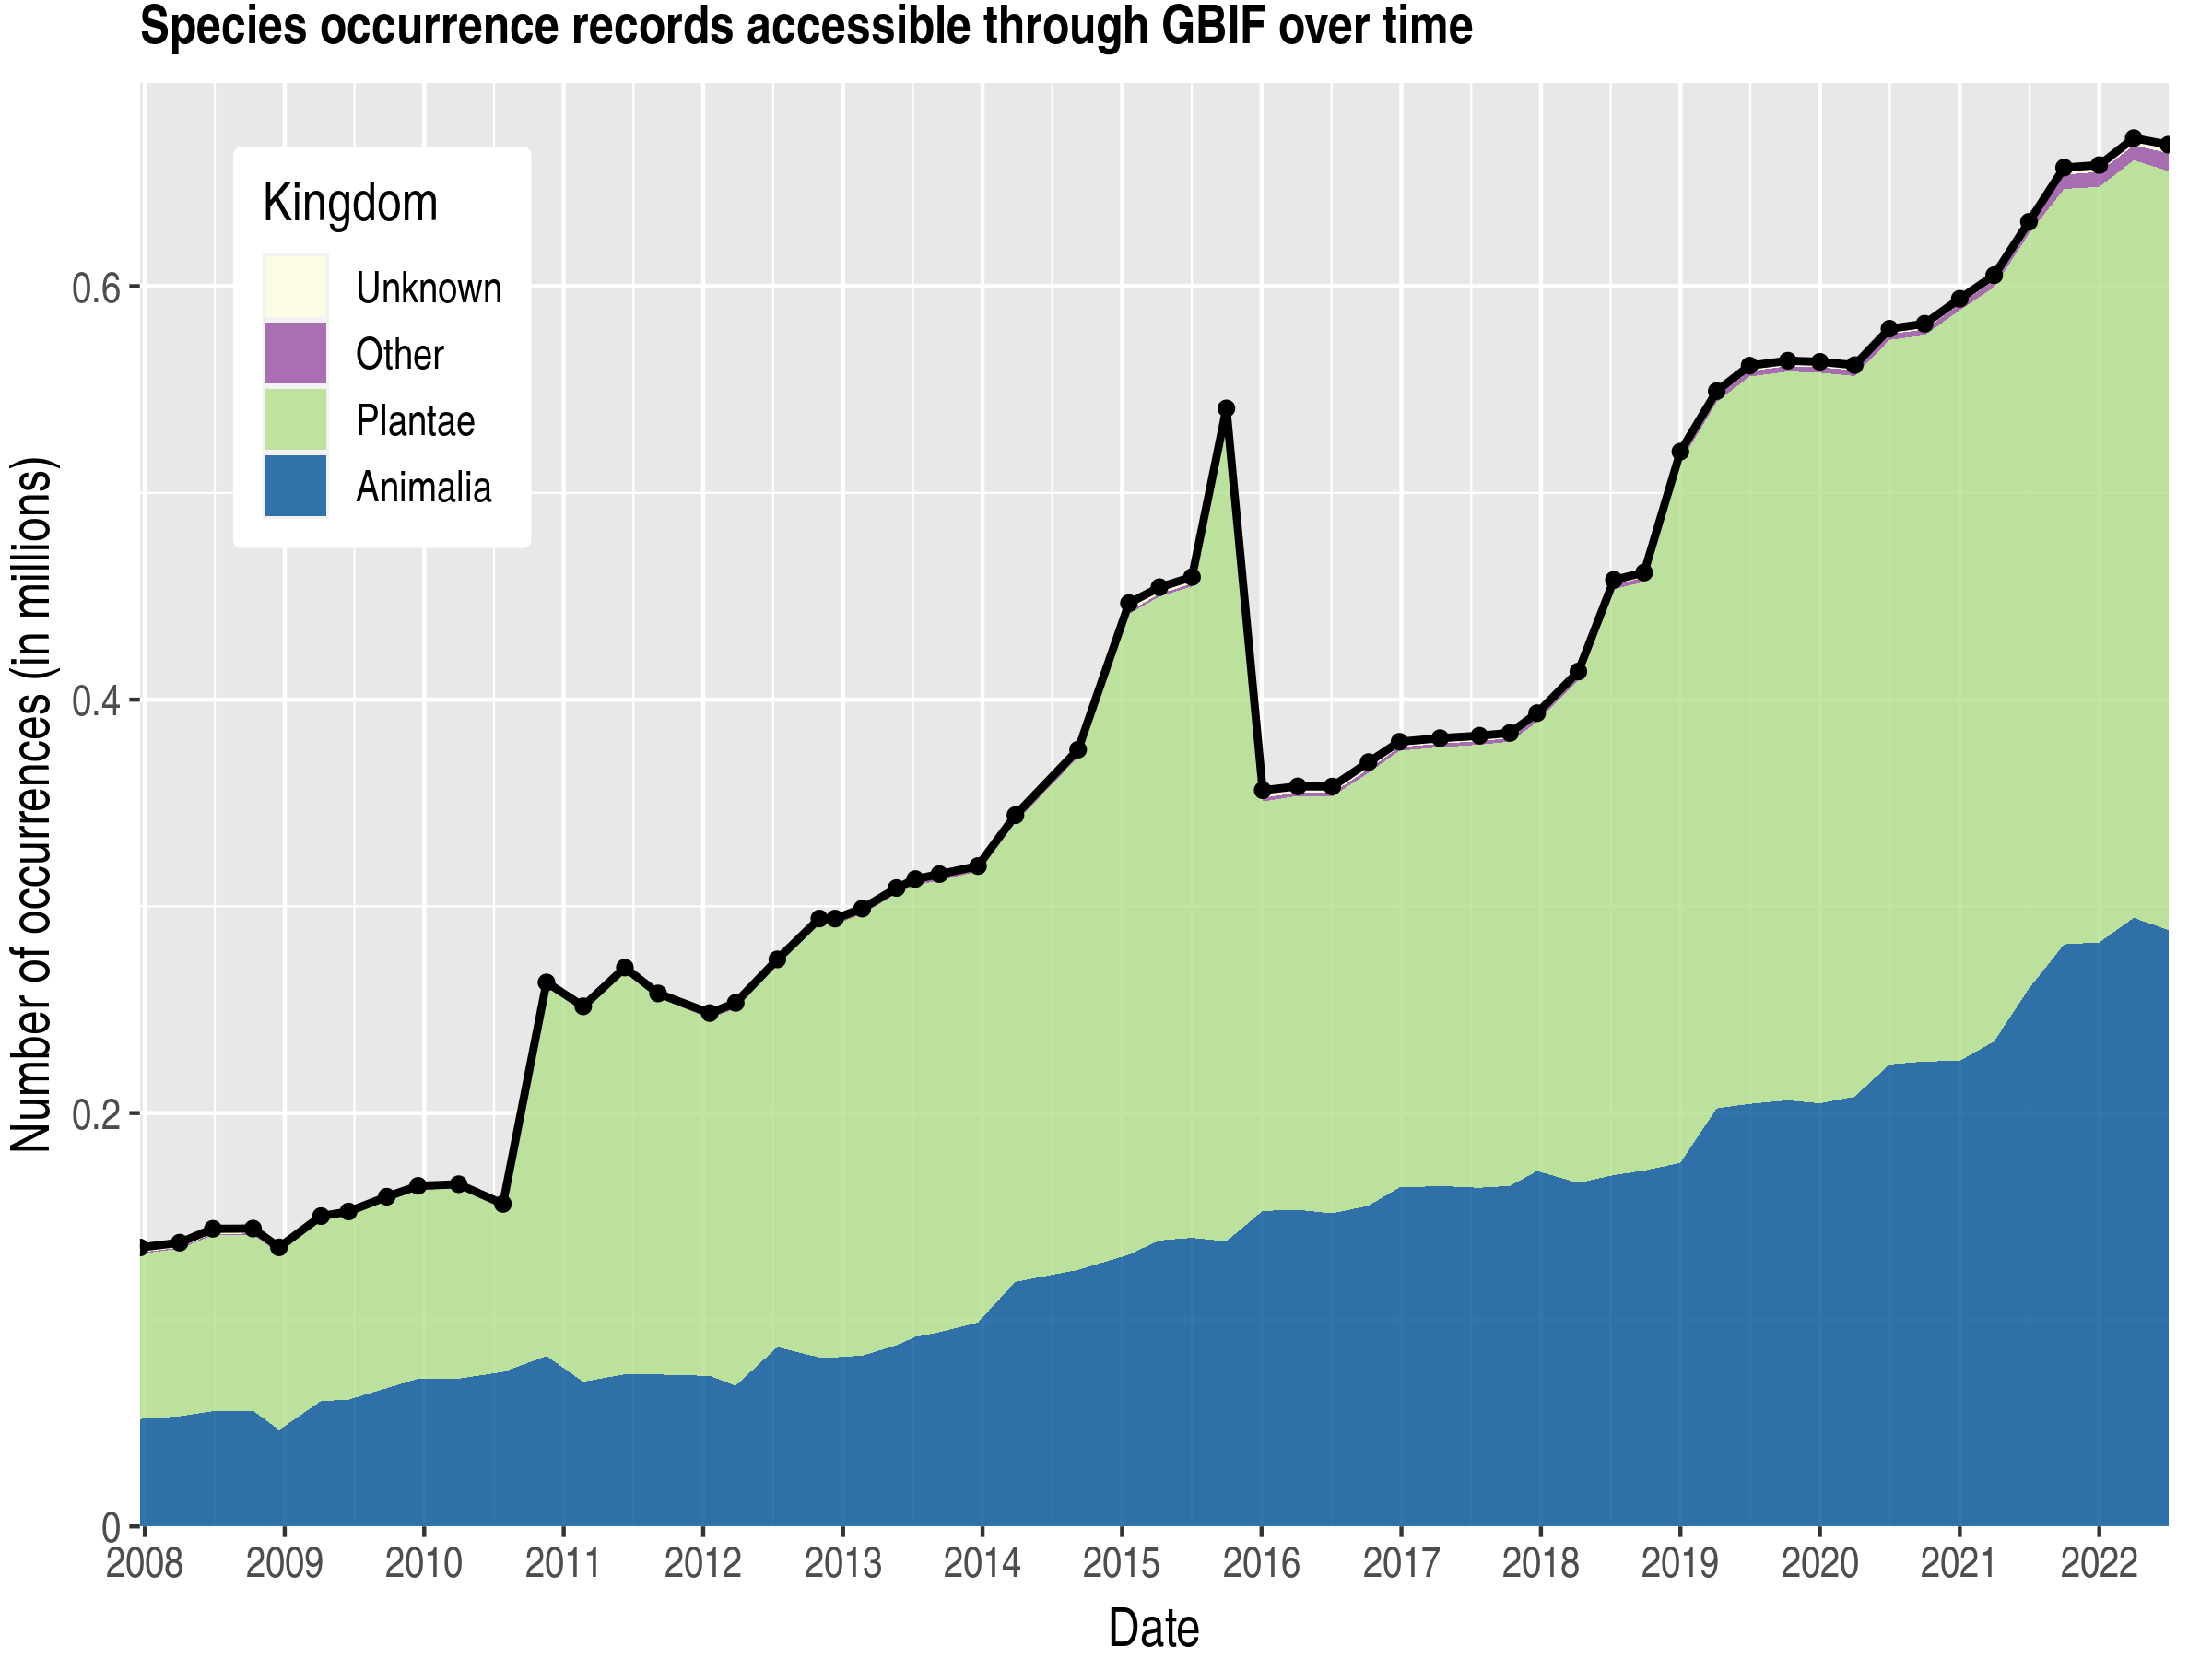 Data trend of records by kingdom about Cameroon